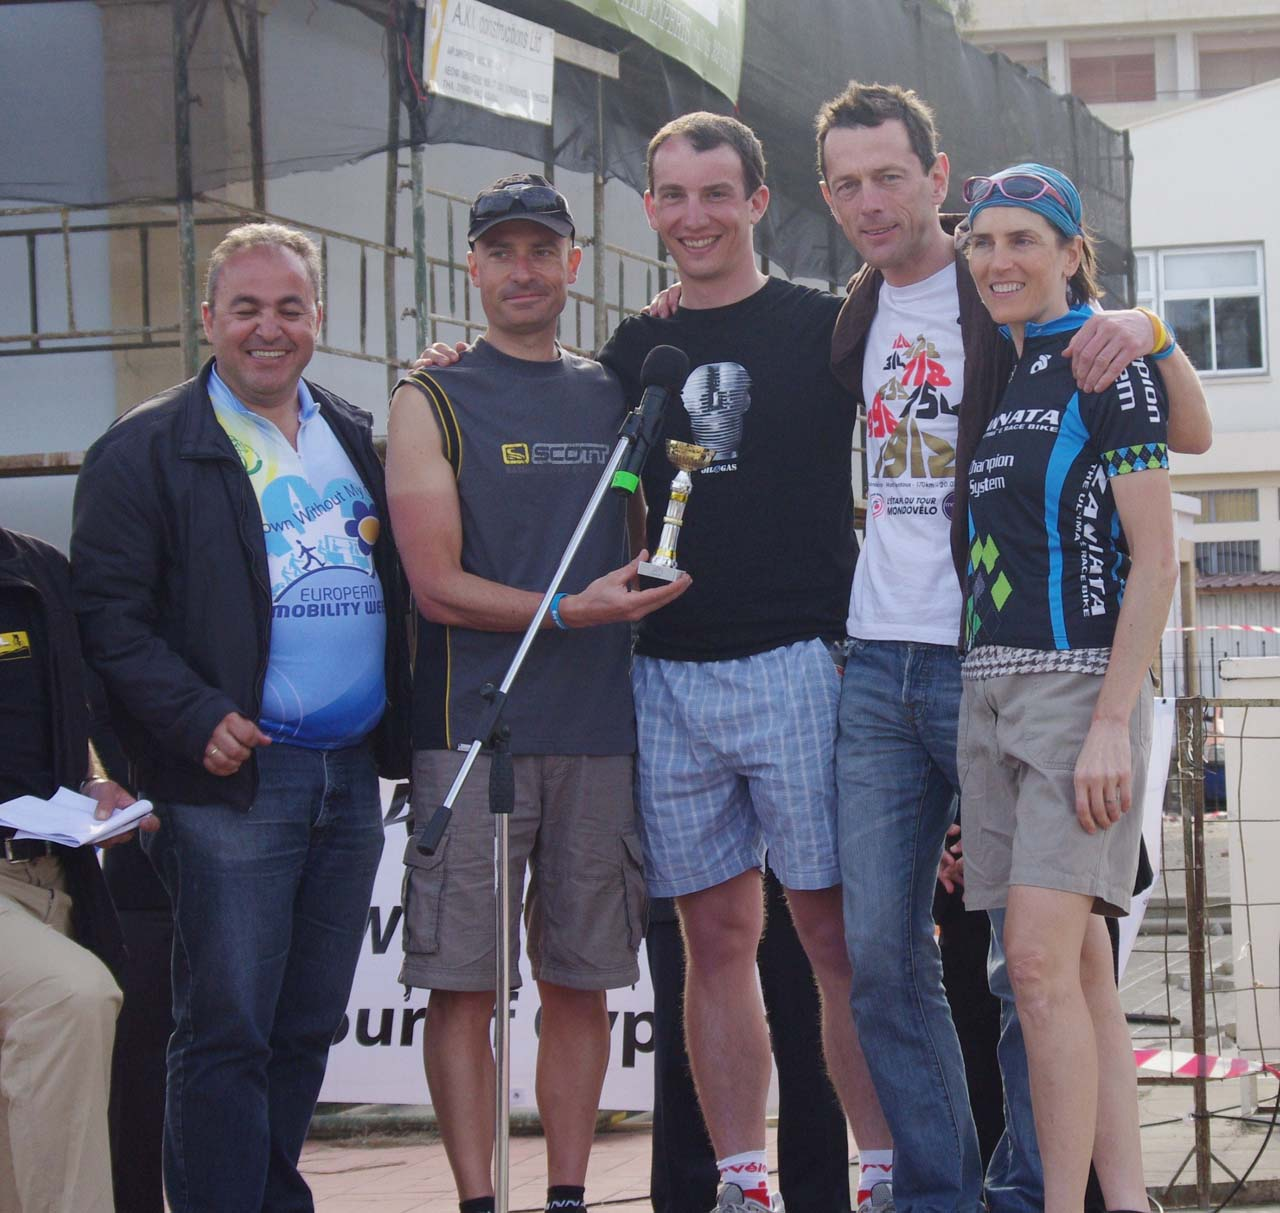 Team Belgium - winners of the mixed team category. ? Jonas Bruffaerts